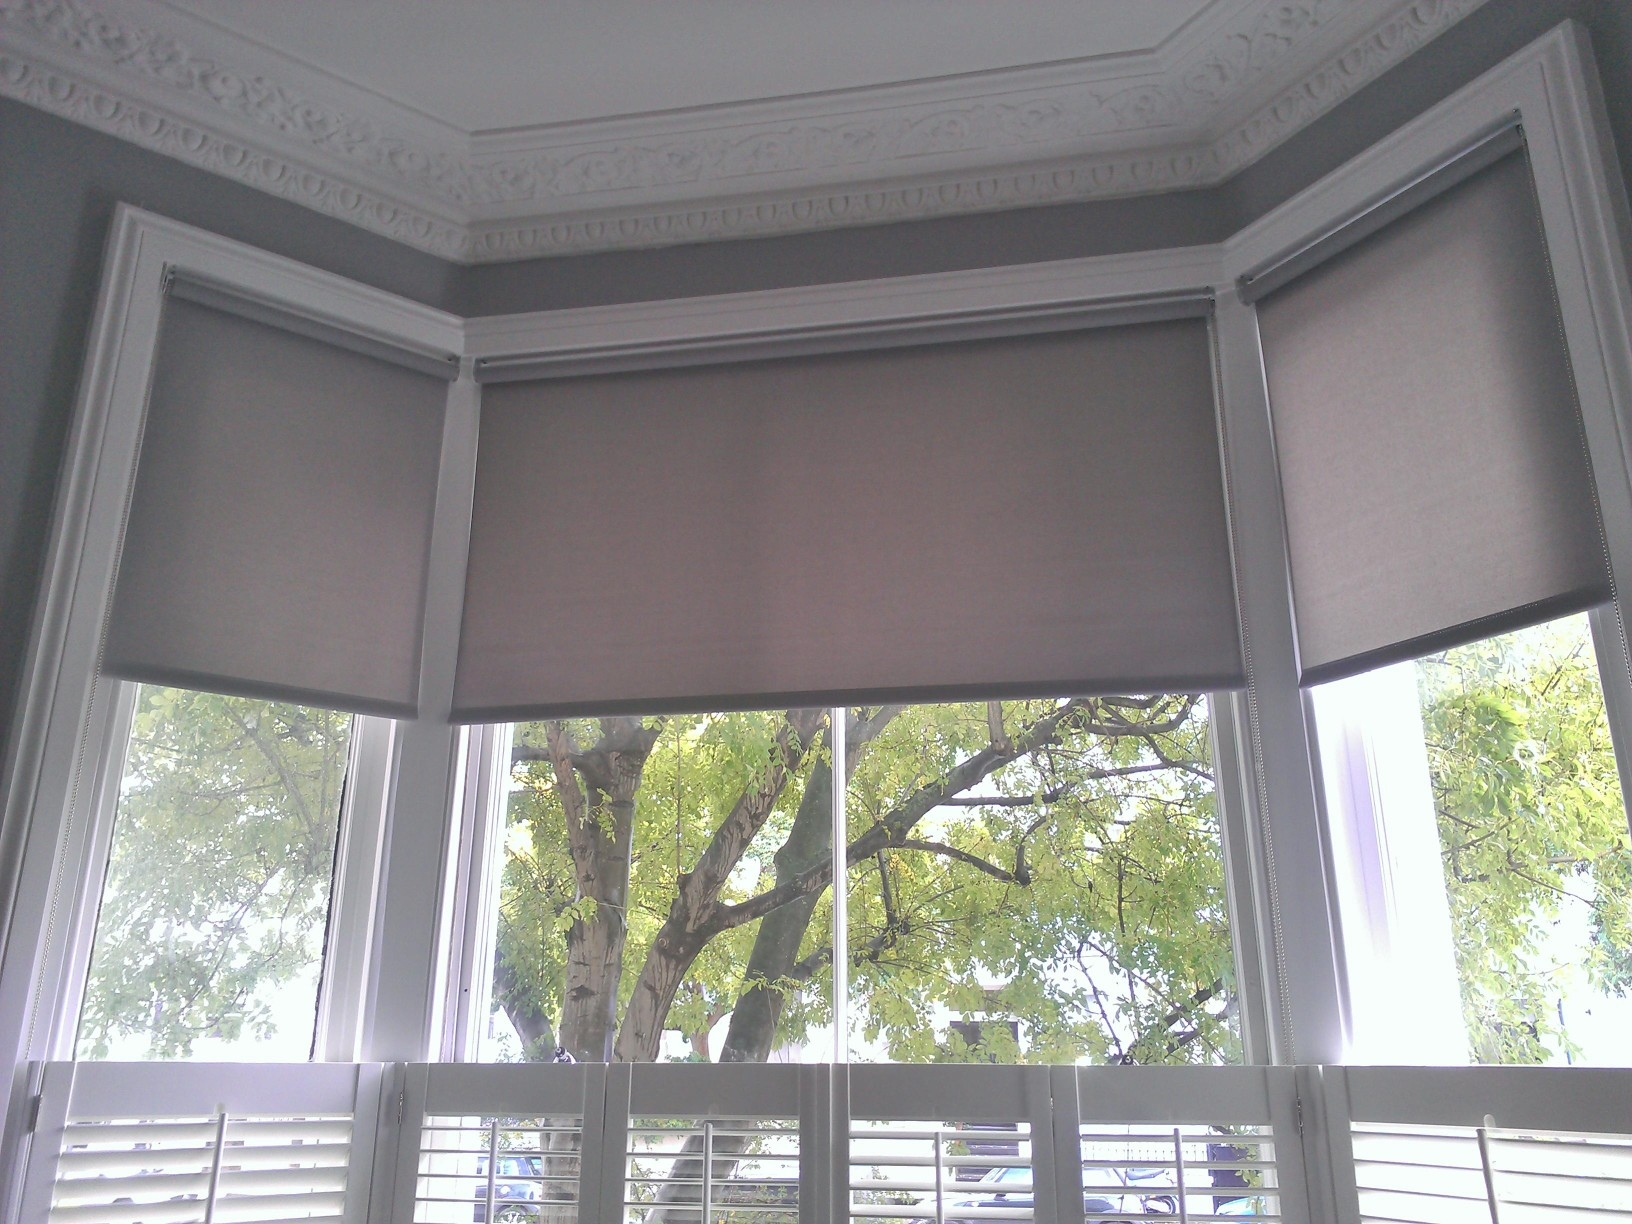 Geometric Patterned Roman Blinds In A Bay Window Could Work In Intended For Roman Blinds On Bay Windows (Image 7 of 15)